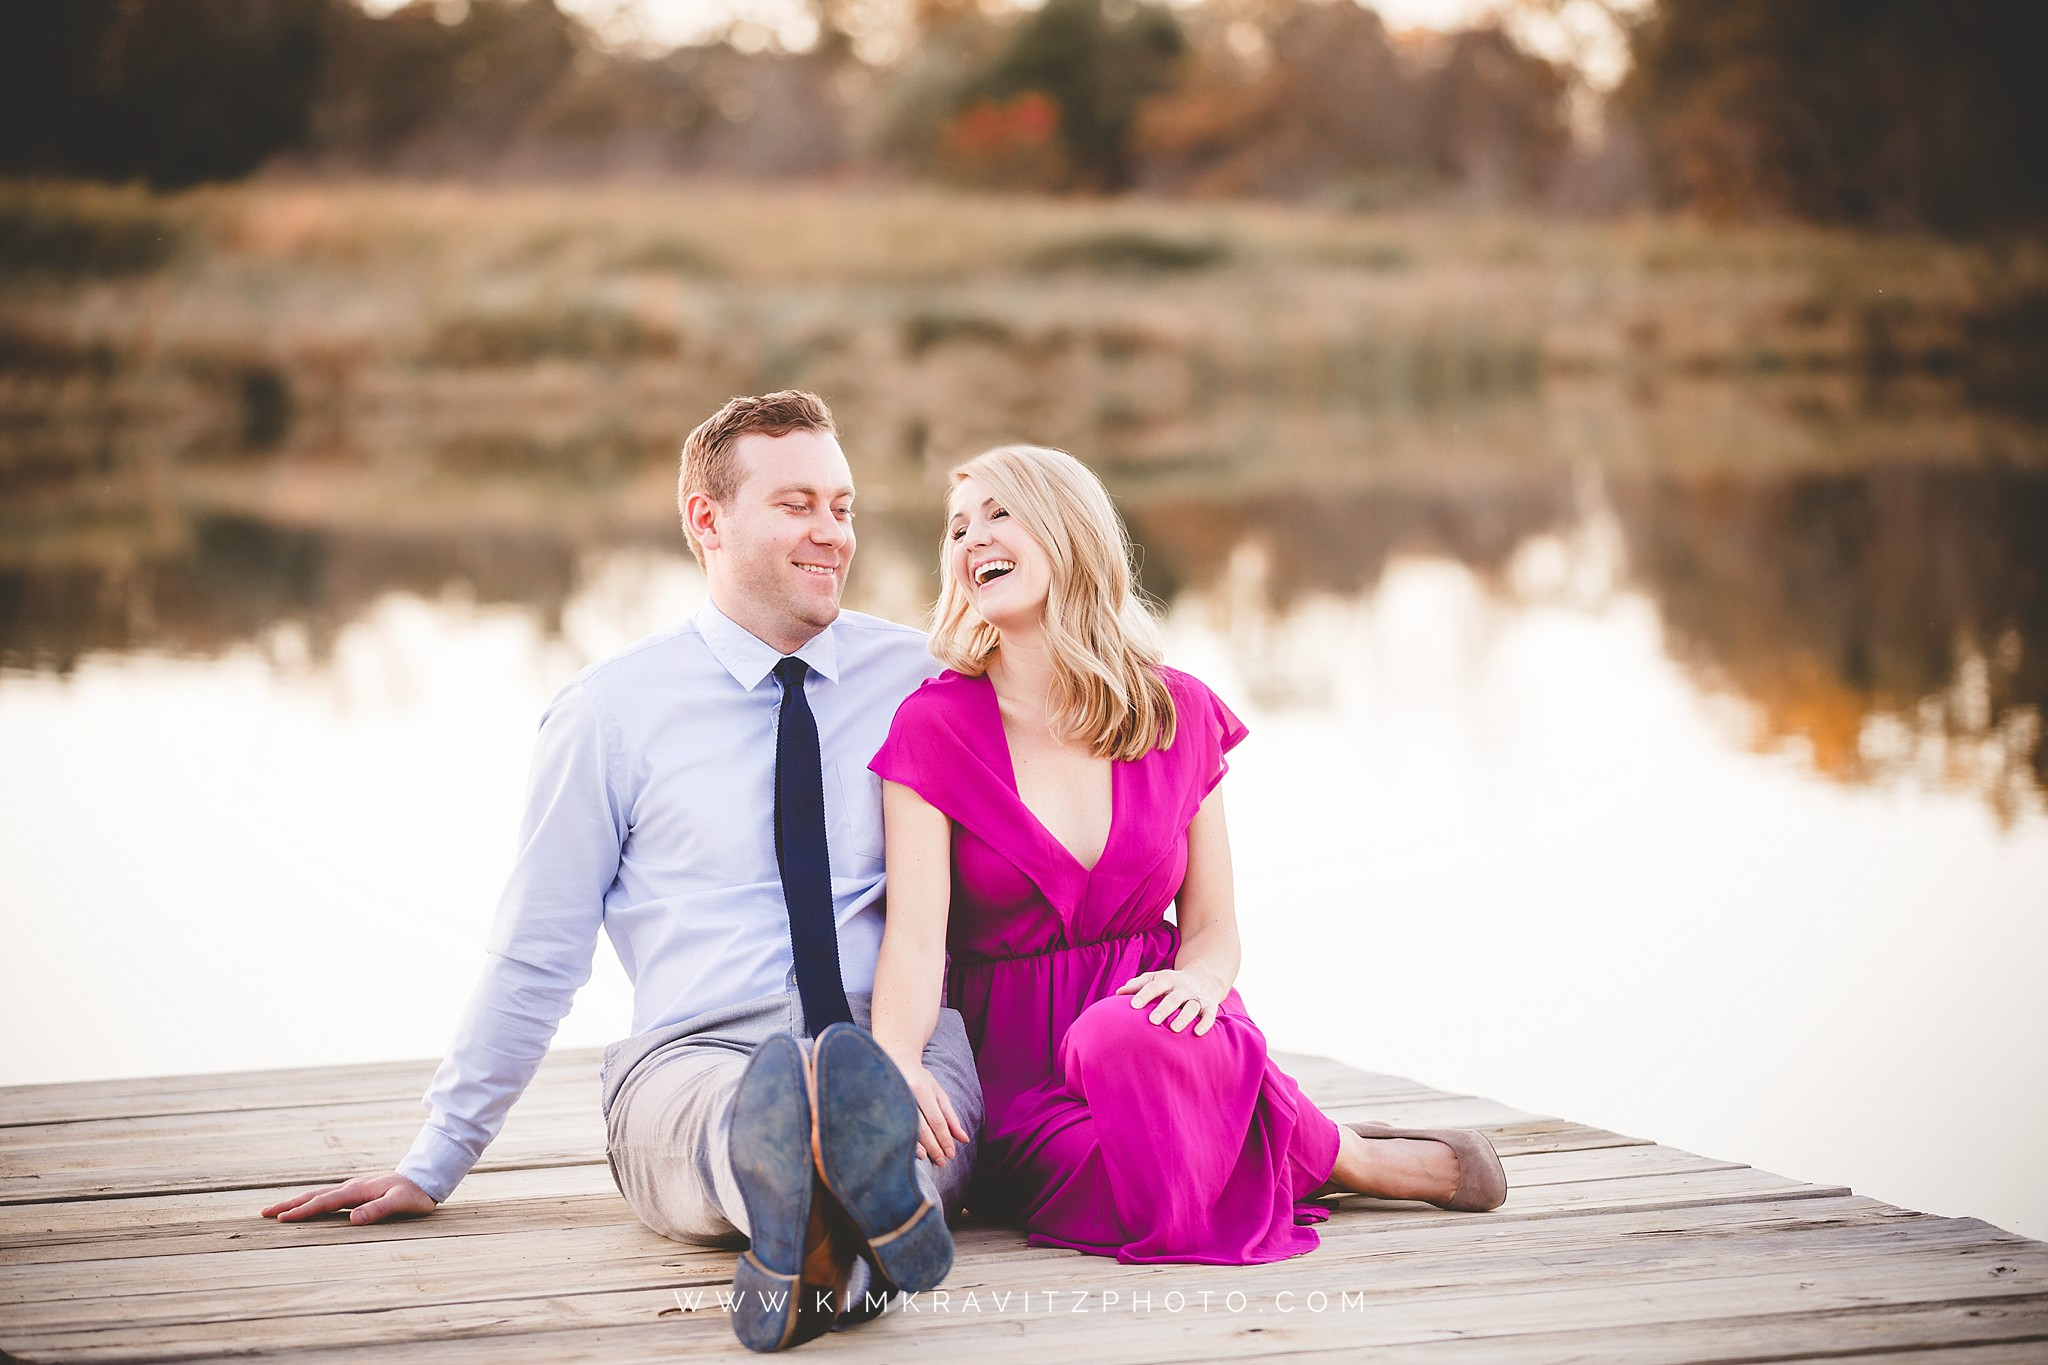 engagement session at private pond near nevada missouri